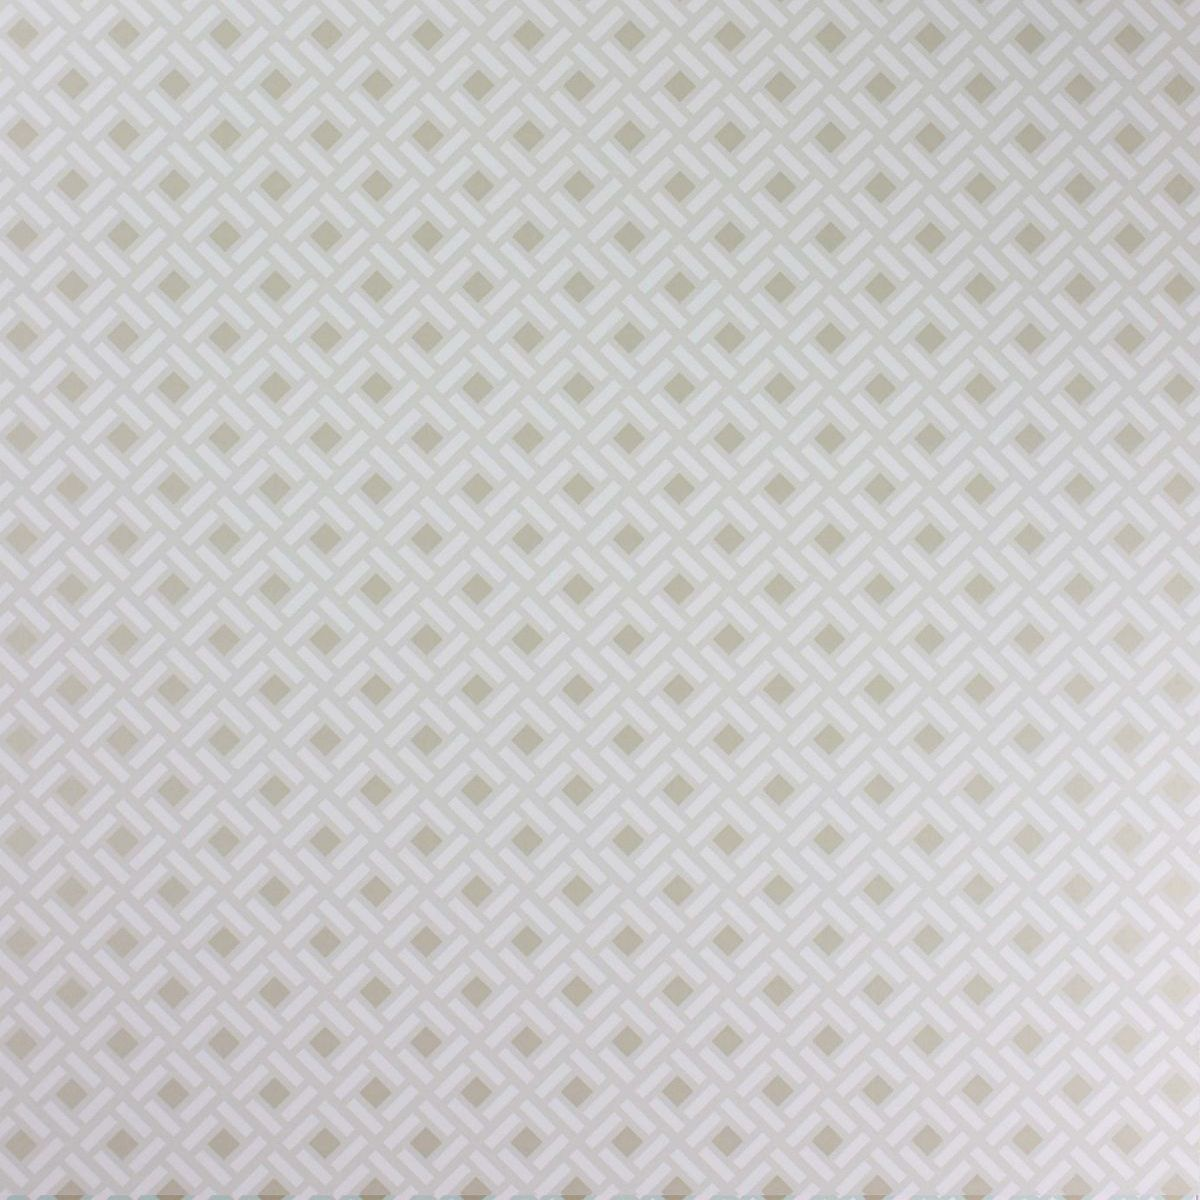 paper-backing wallpaper Nina Campbell Rosslyn Wallpapers NCW4155-03 | paper-backing